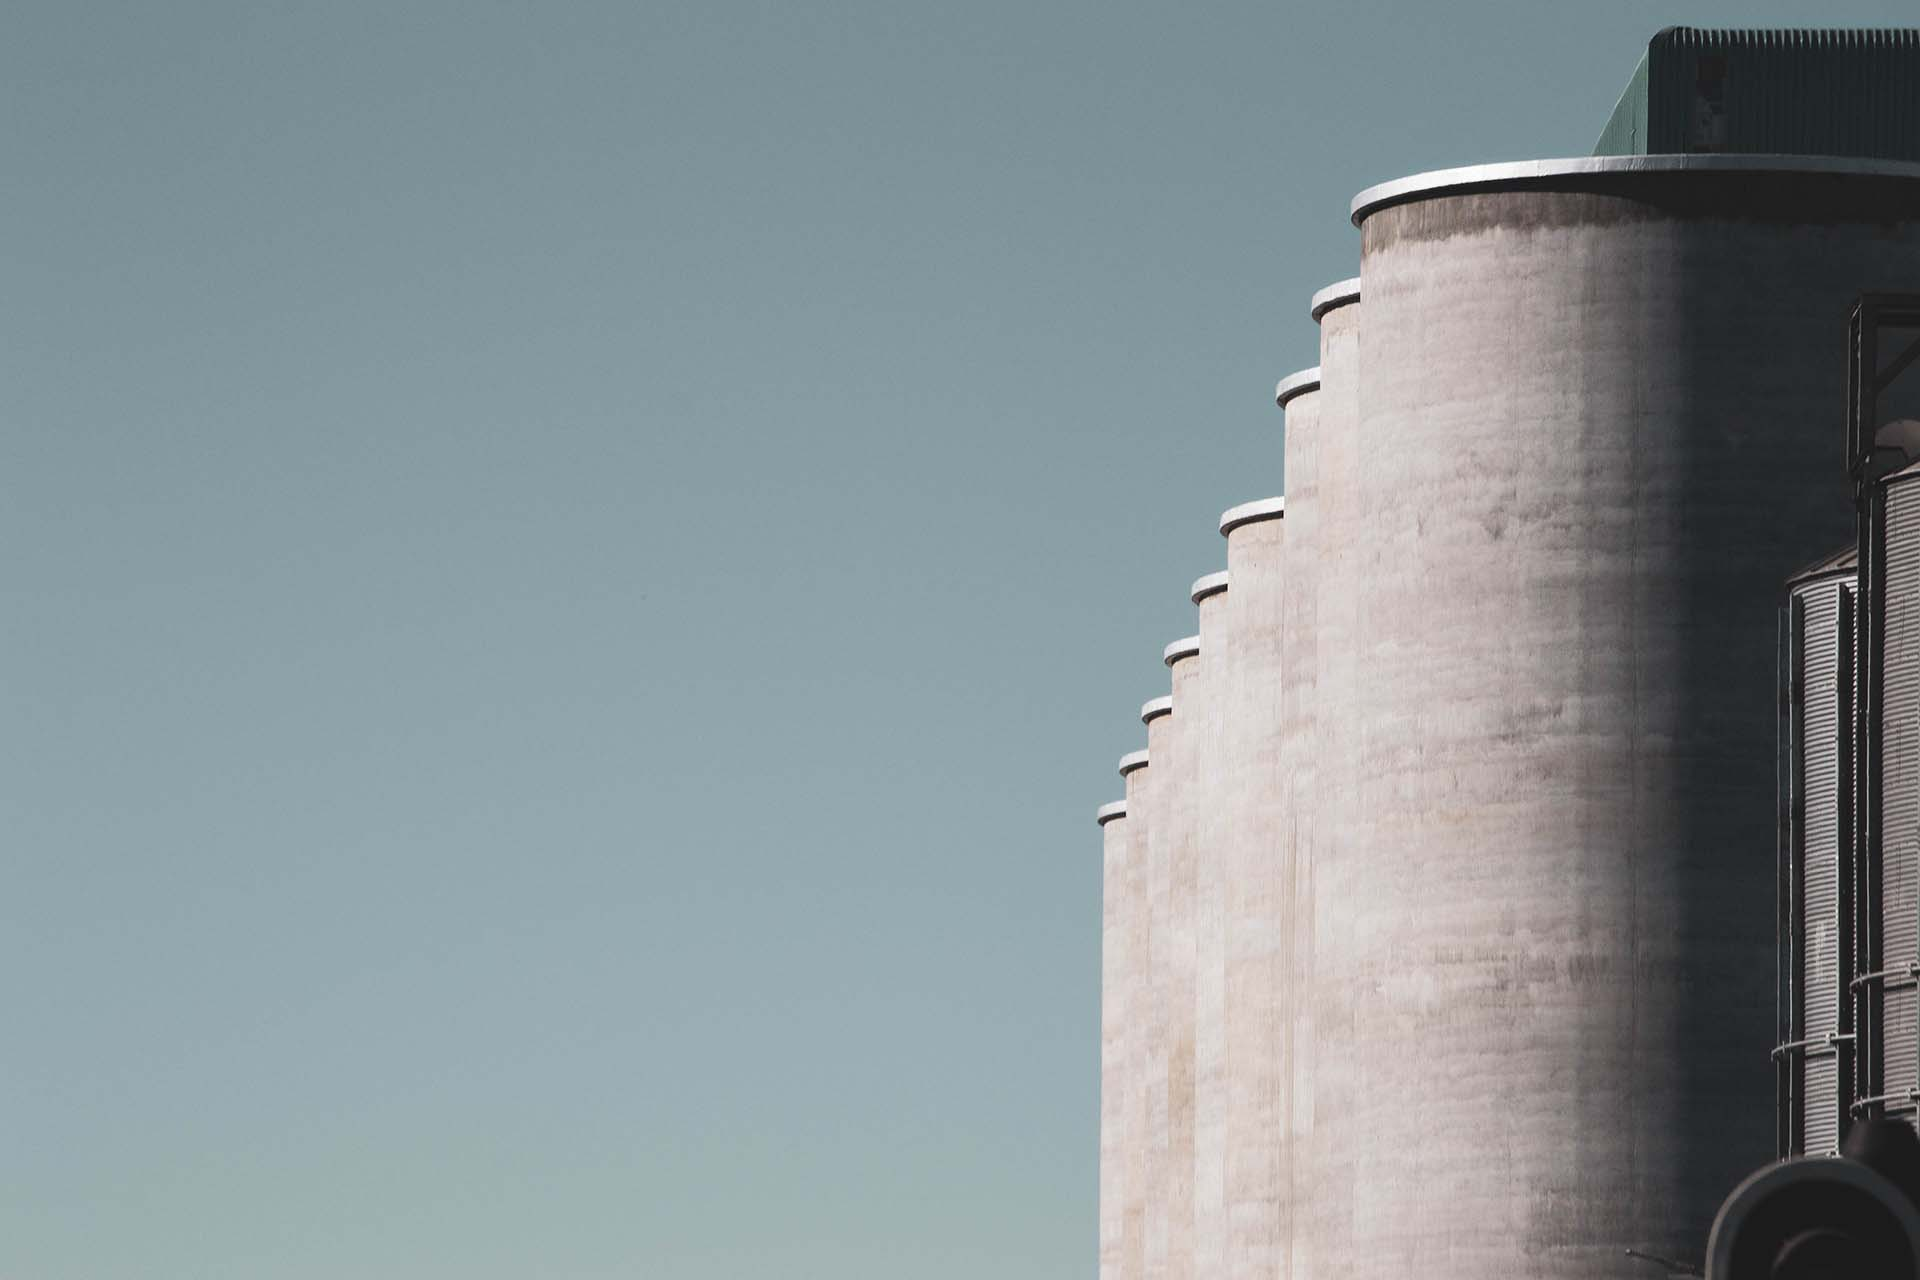 t2informatik Blog: Silo mentality – no one likes it, everyone knows it